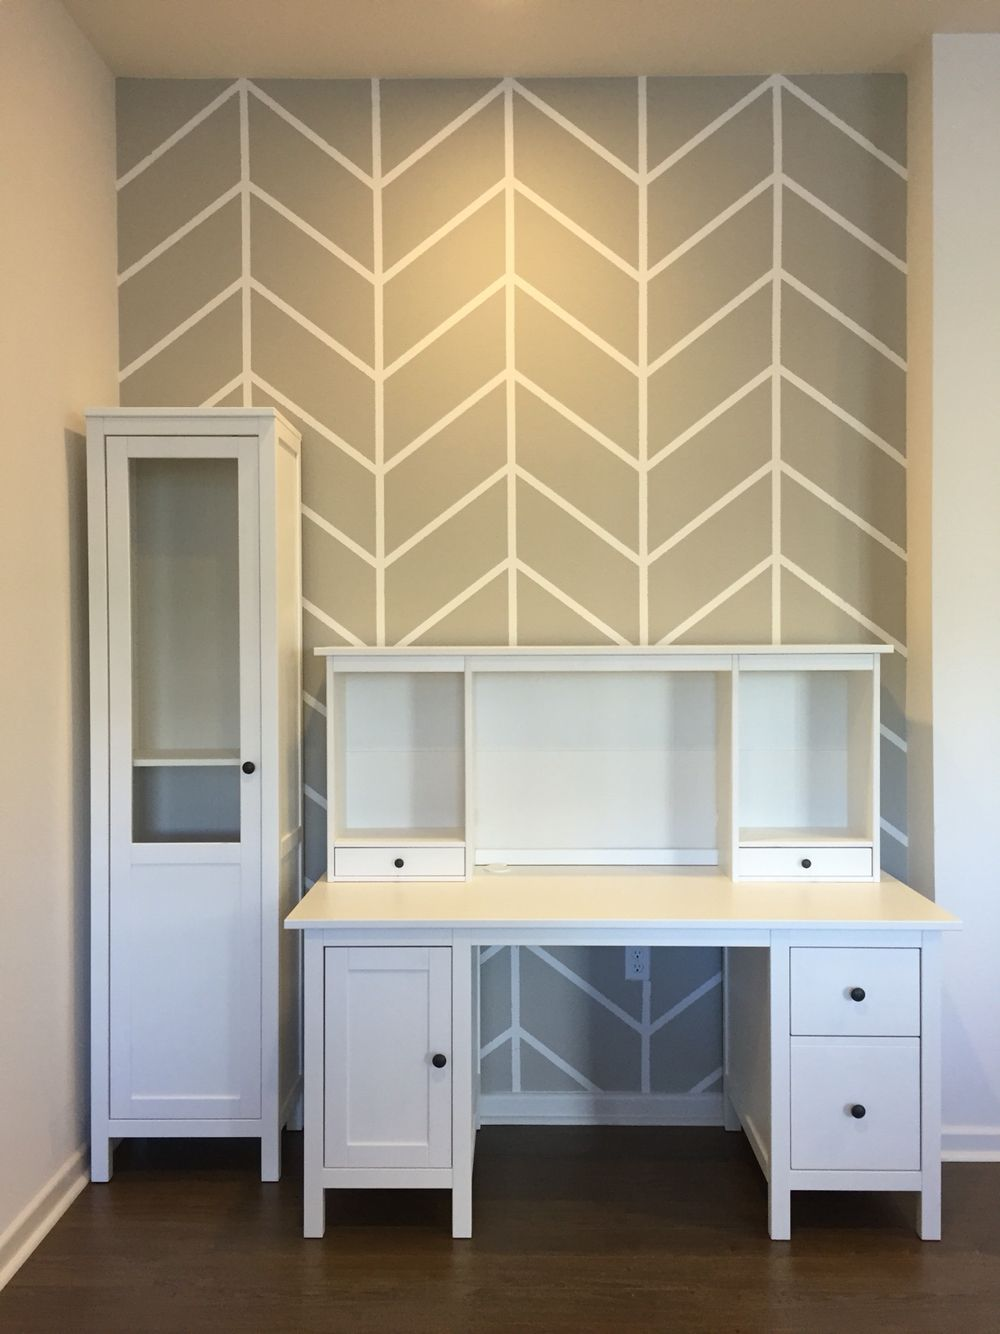 DIY herringbone pattern accent wall with paint and painters tape.  apartment  Pinterest